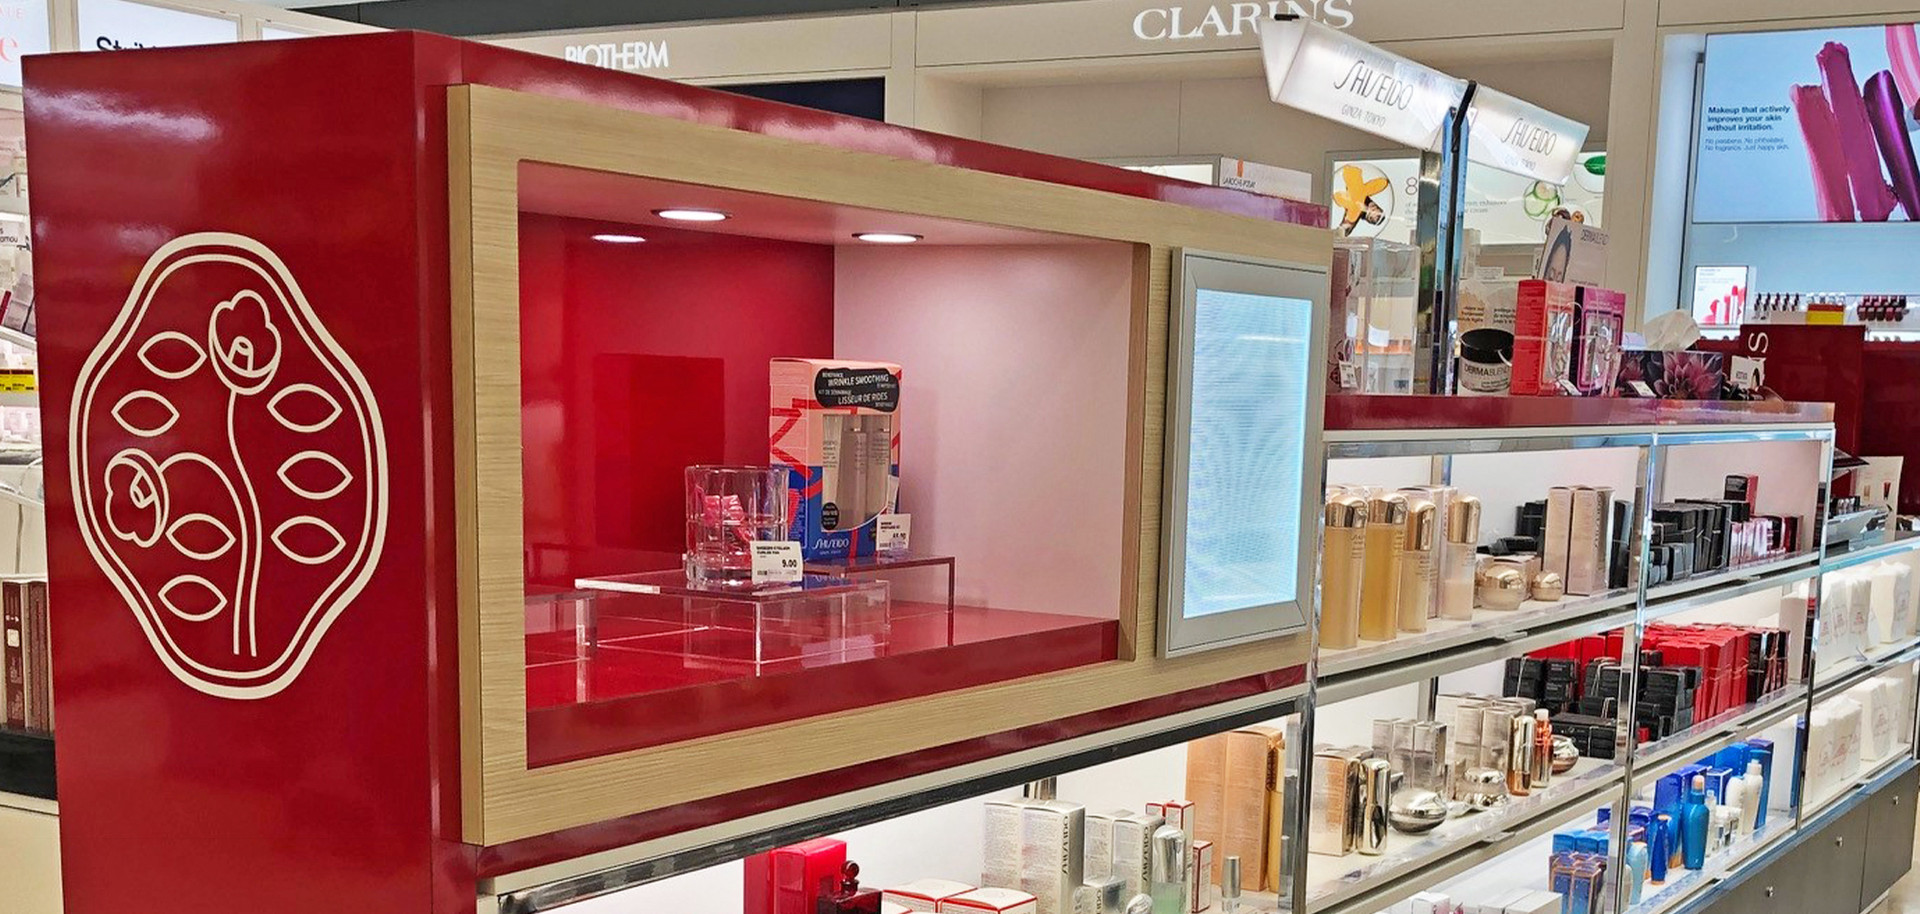 Shiseido Counter Display